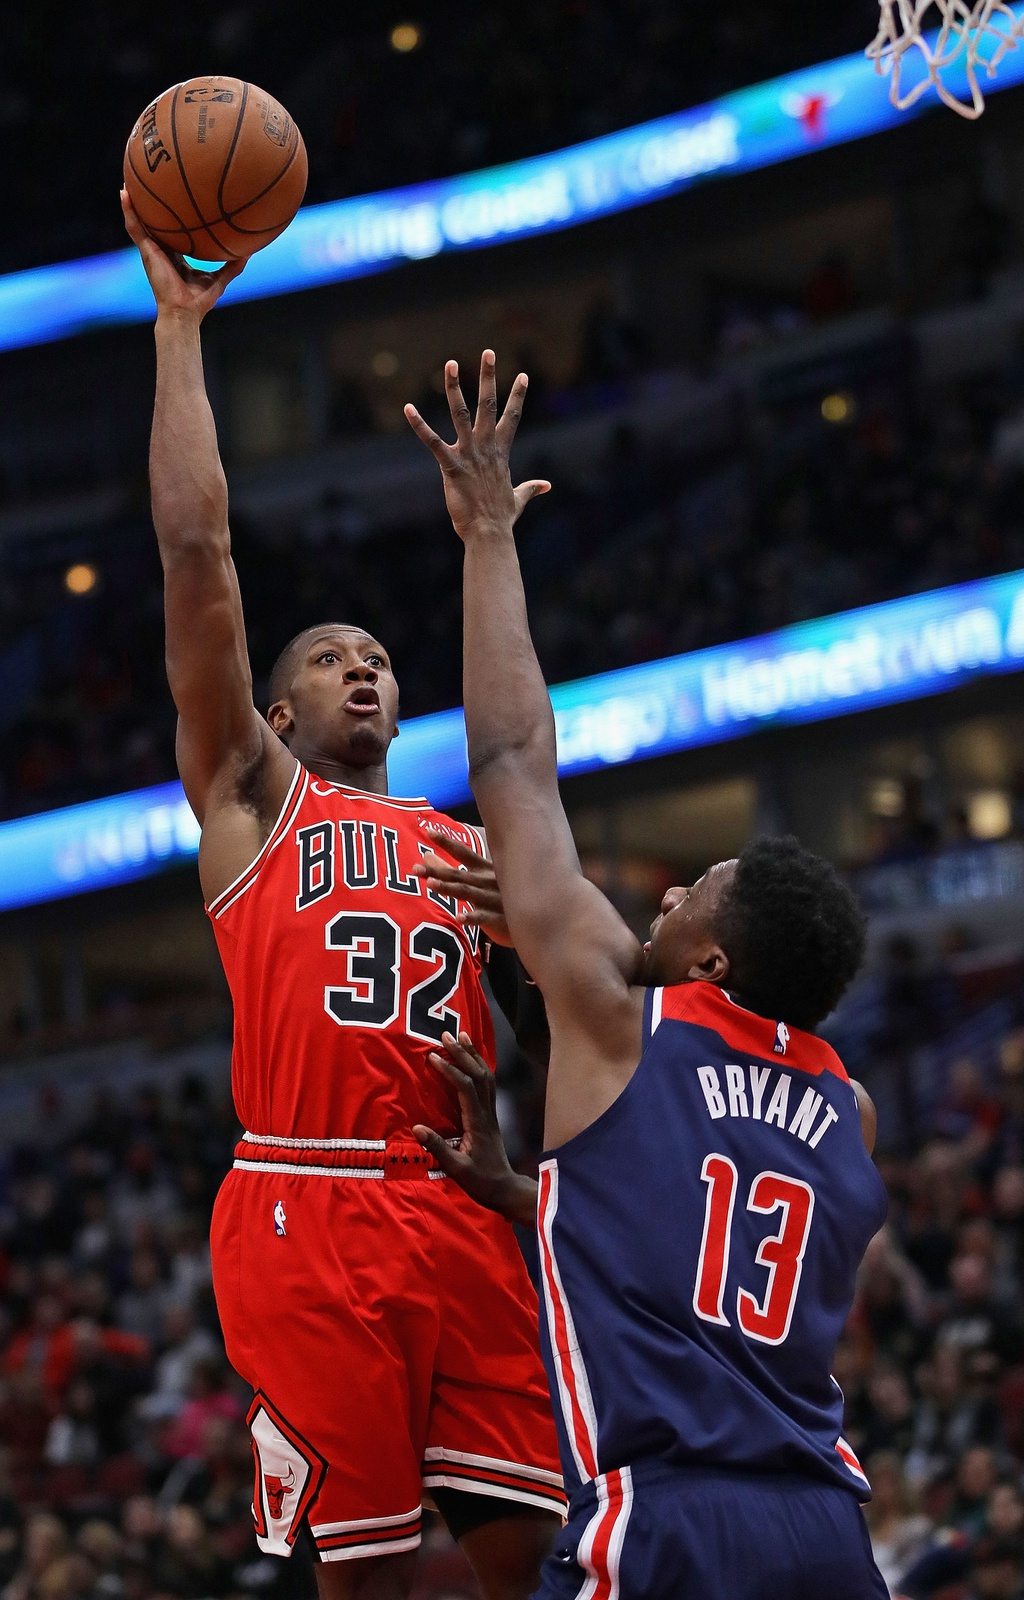 Kris Dunn #32 of the Chicago Bulls shoots over Thomas Bryant #13 of the Washington Wizards at the United Center on March 20, 2019 in Chicago, Illinois.